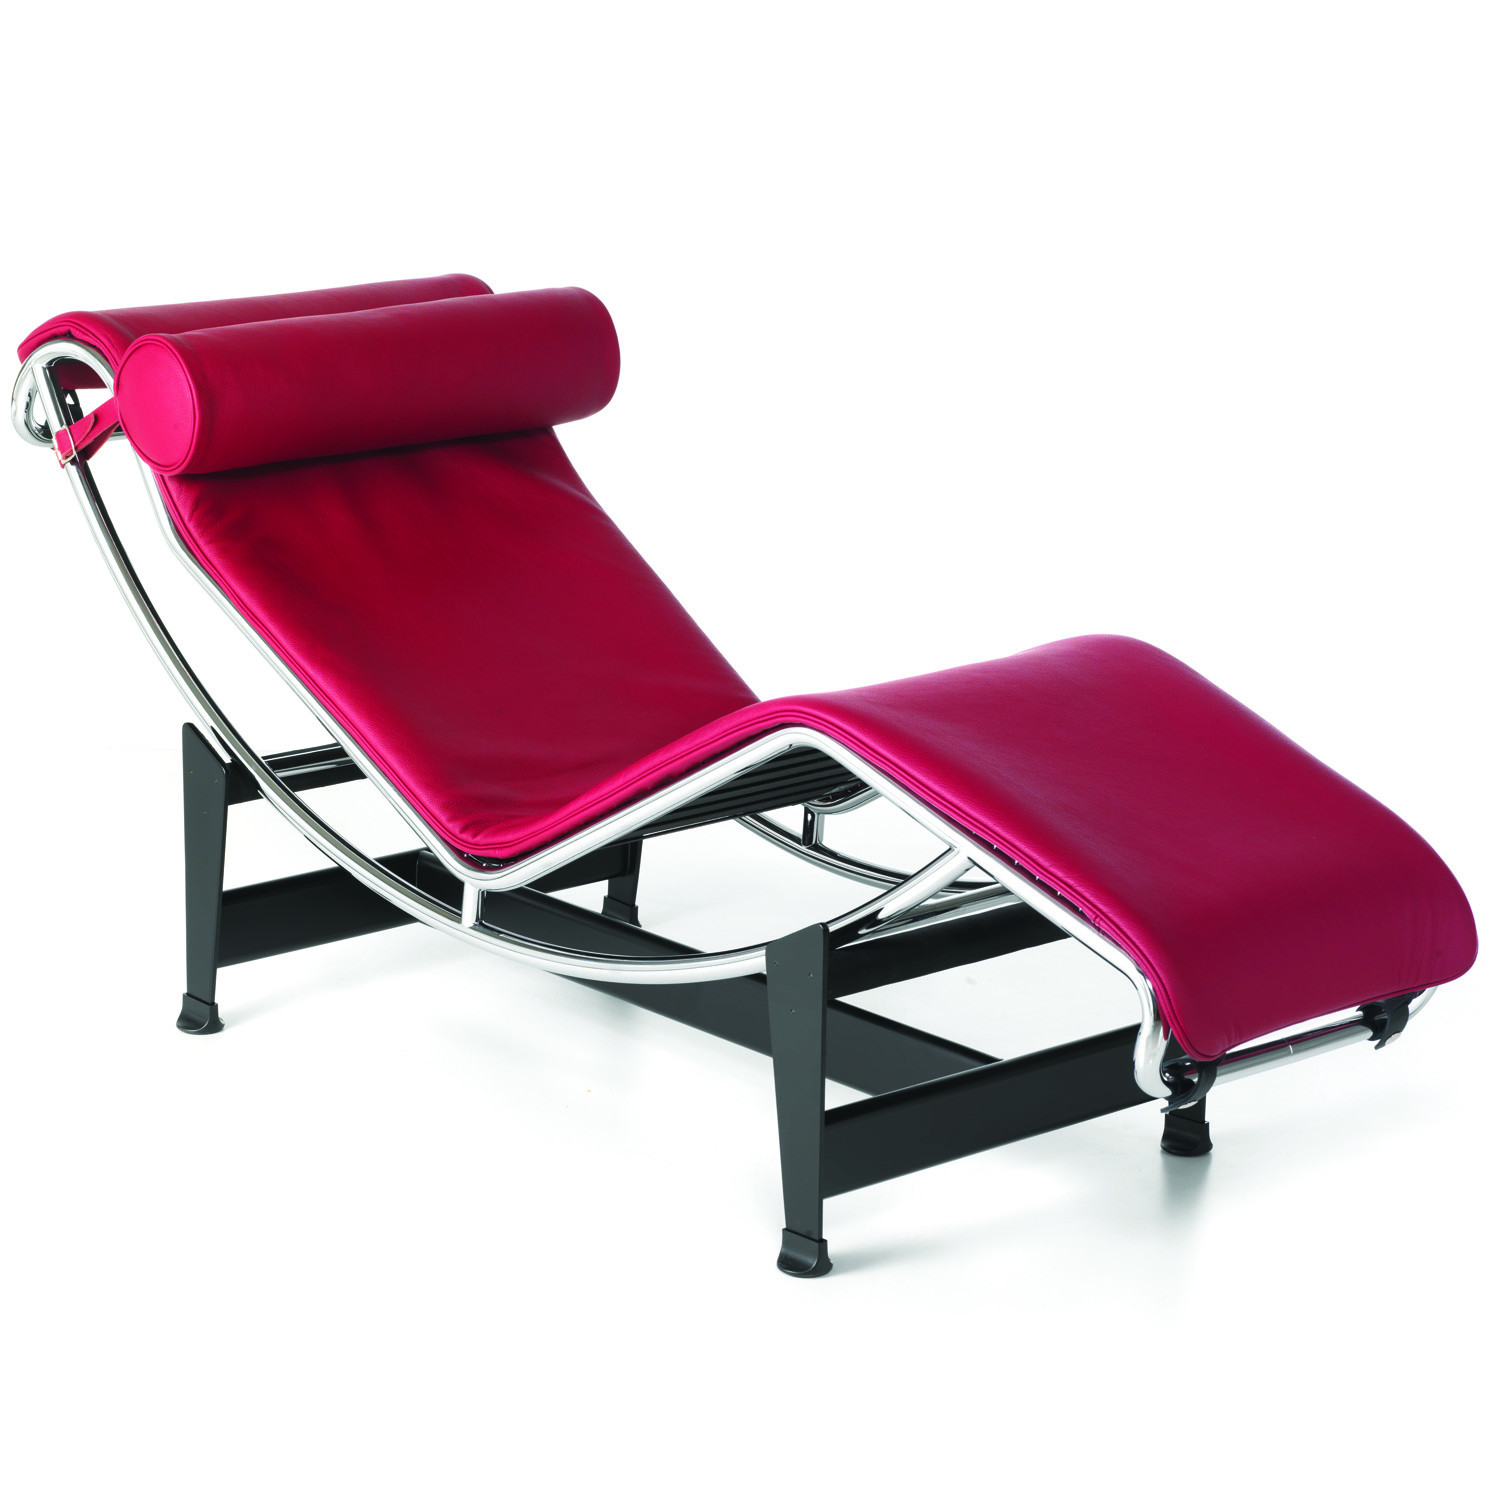 LC4 Chaise-longue by Cassina